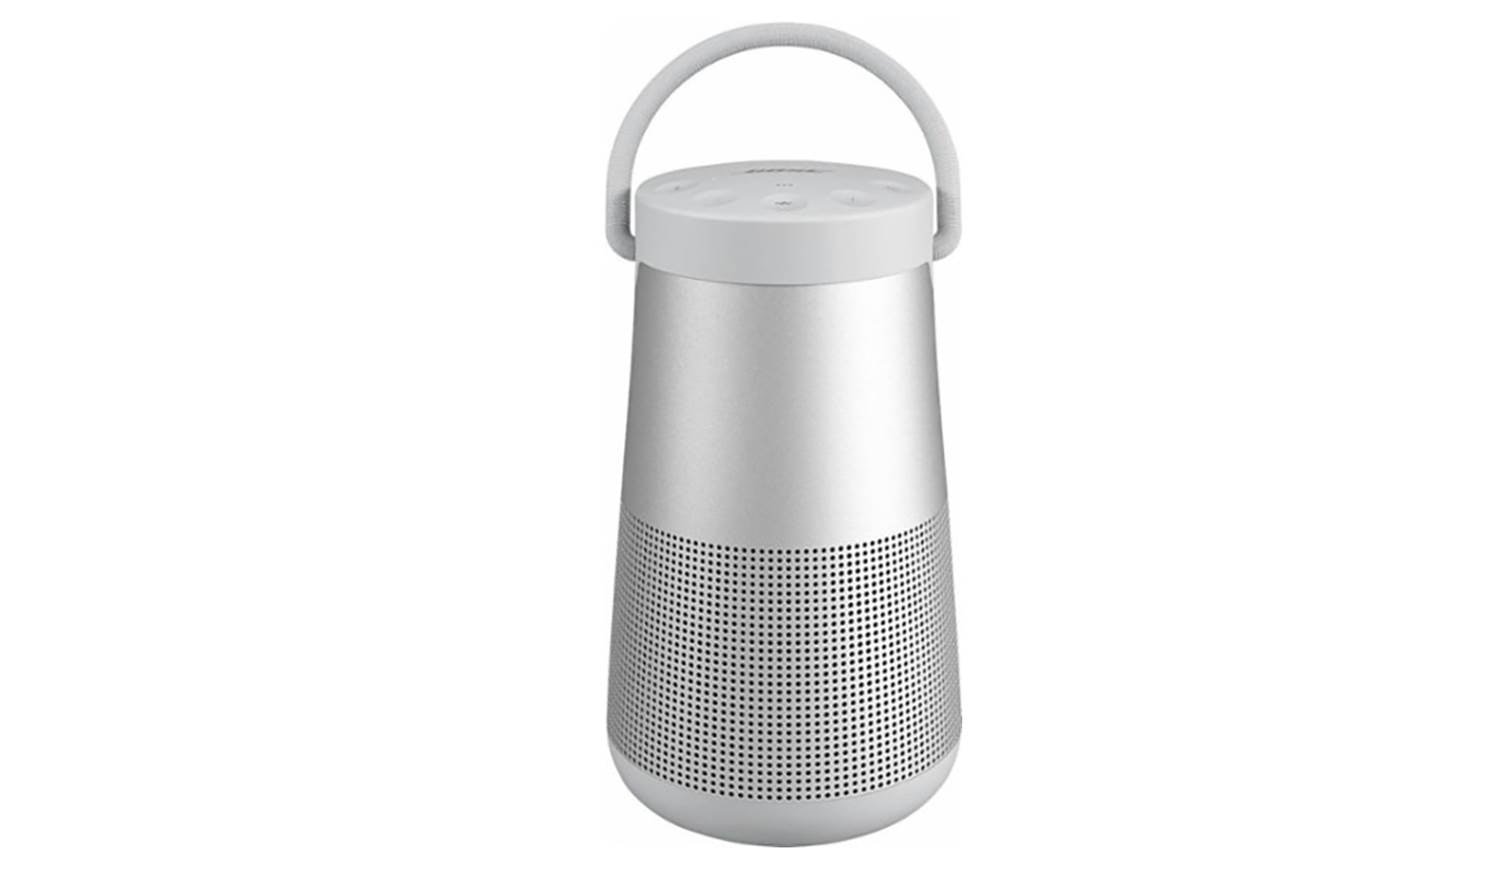 bose revolve. bose soundlink revolve plus bluetooth speaker - luxe grey